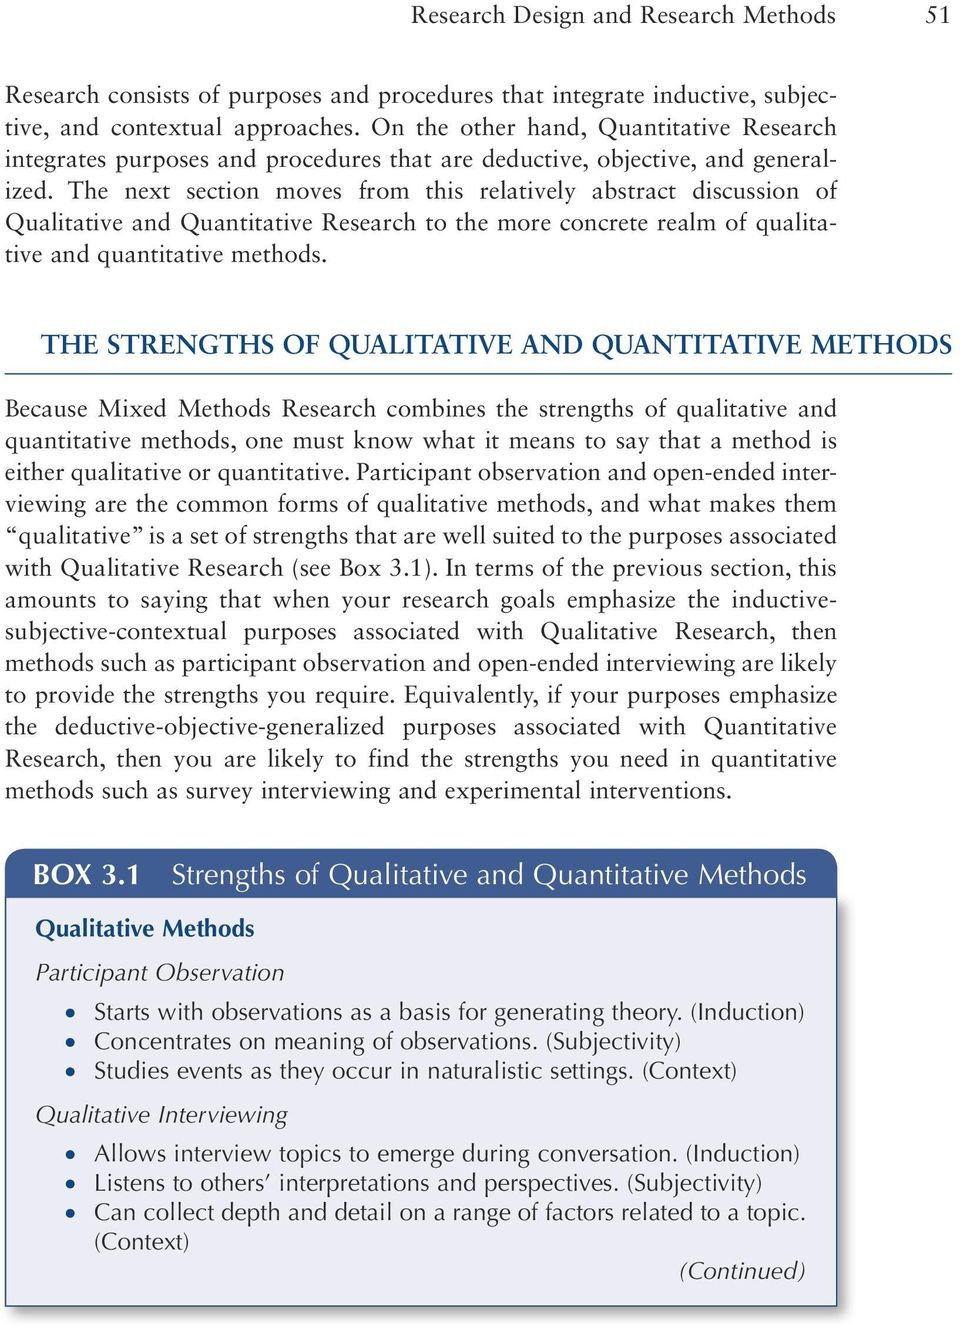 The next section moves from this relatively abstract discussion of Qualitative and Quantitative Research to the more concrete realm of qualitative and quantitative methods.